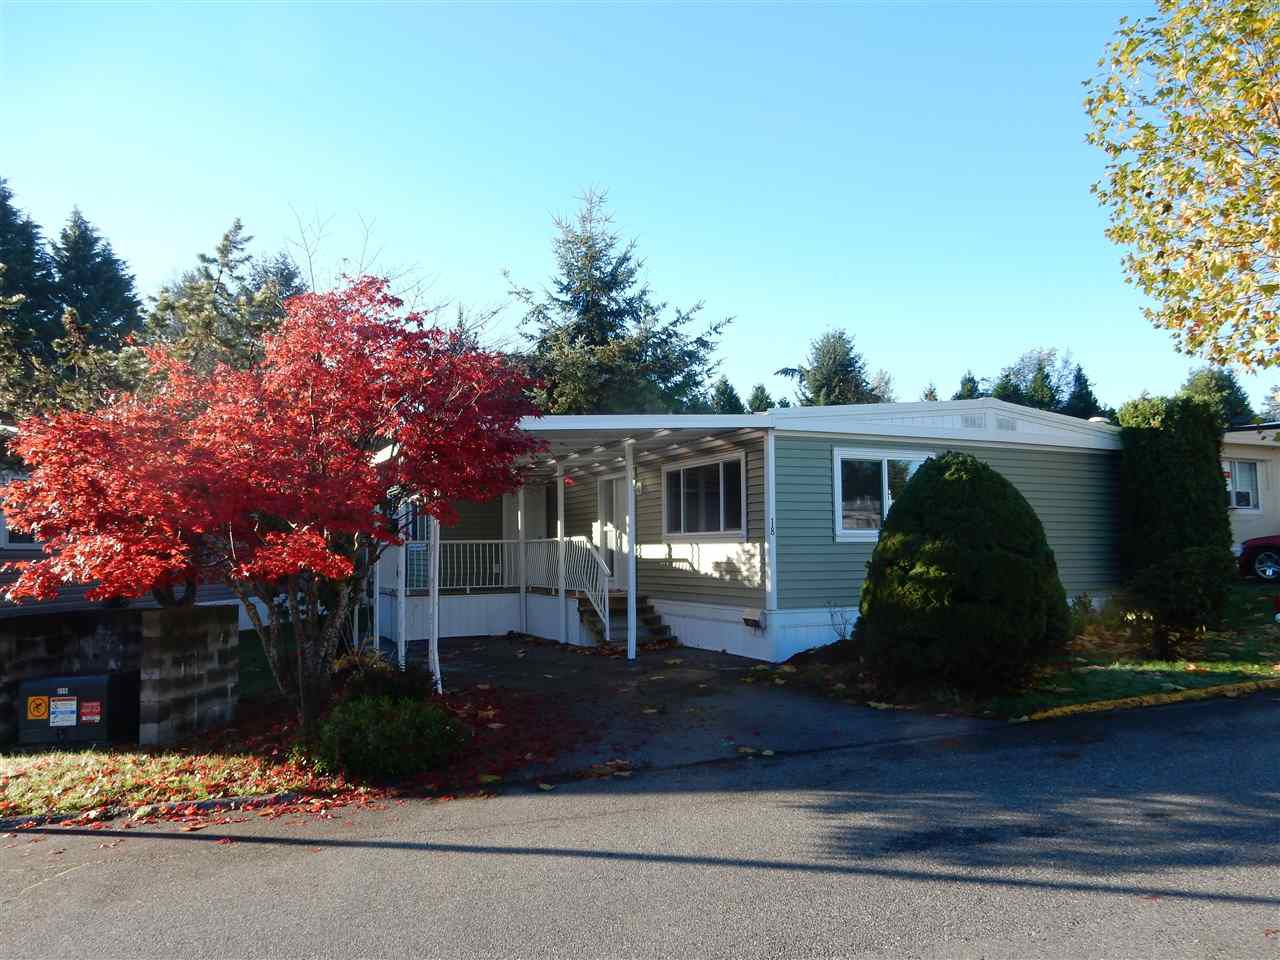 """Main Photo: 18 8220 KING GEORGE Boulevard in Surrey: Bear Creek Green Timbers Manufactured Home for sale in """"CRESTWAY BAYS"""" : MLS®# R2055341"""